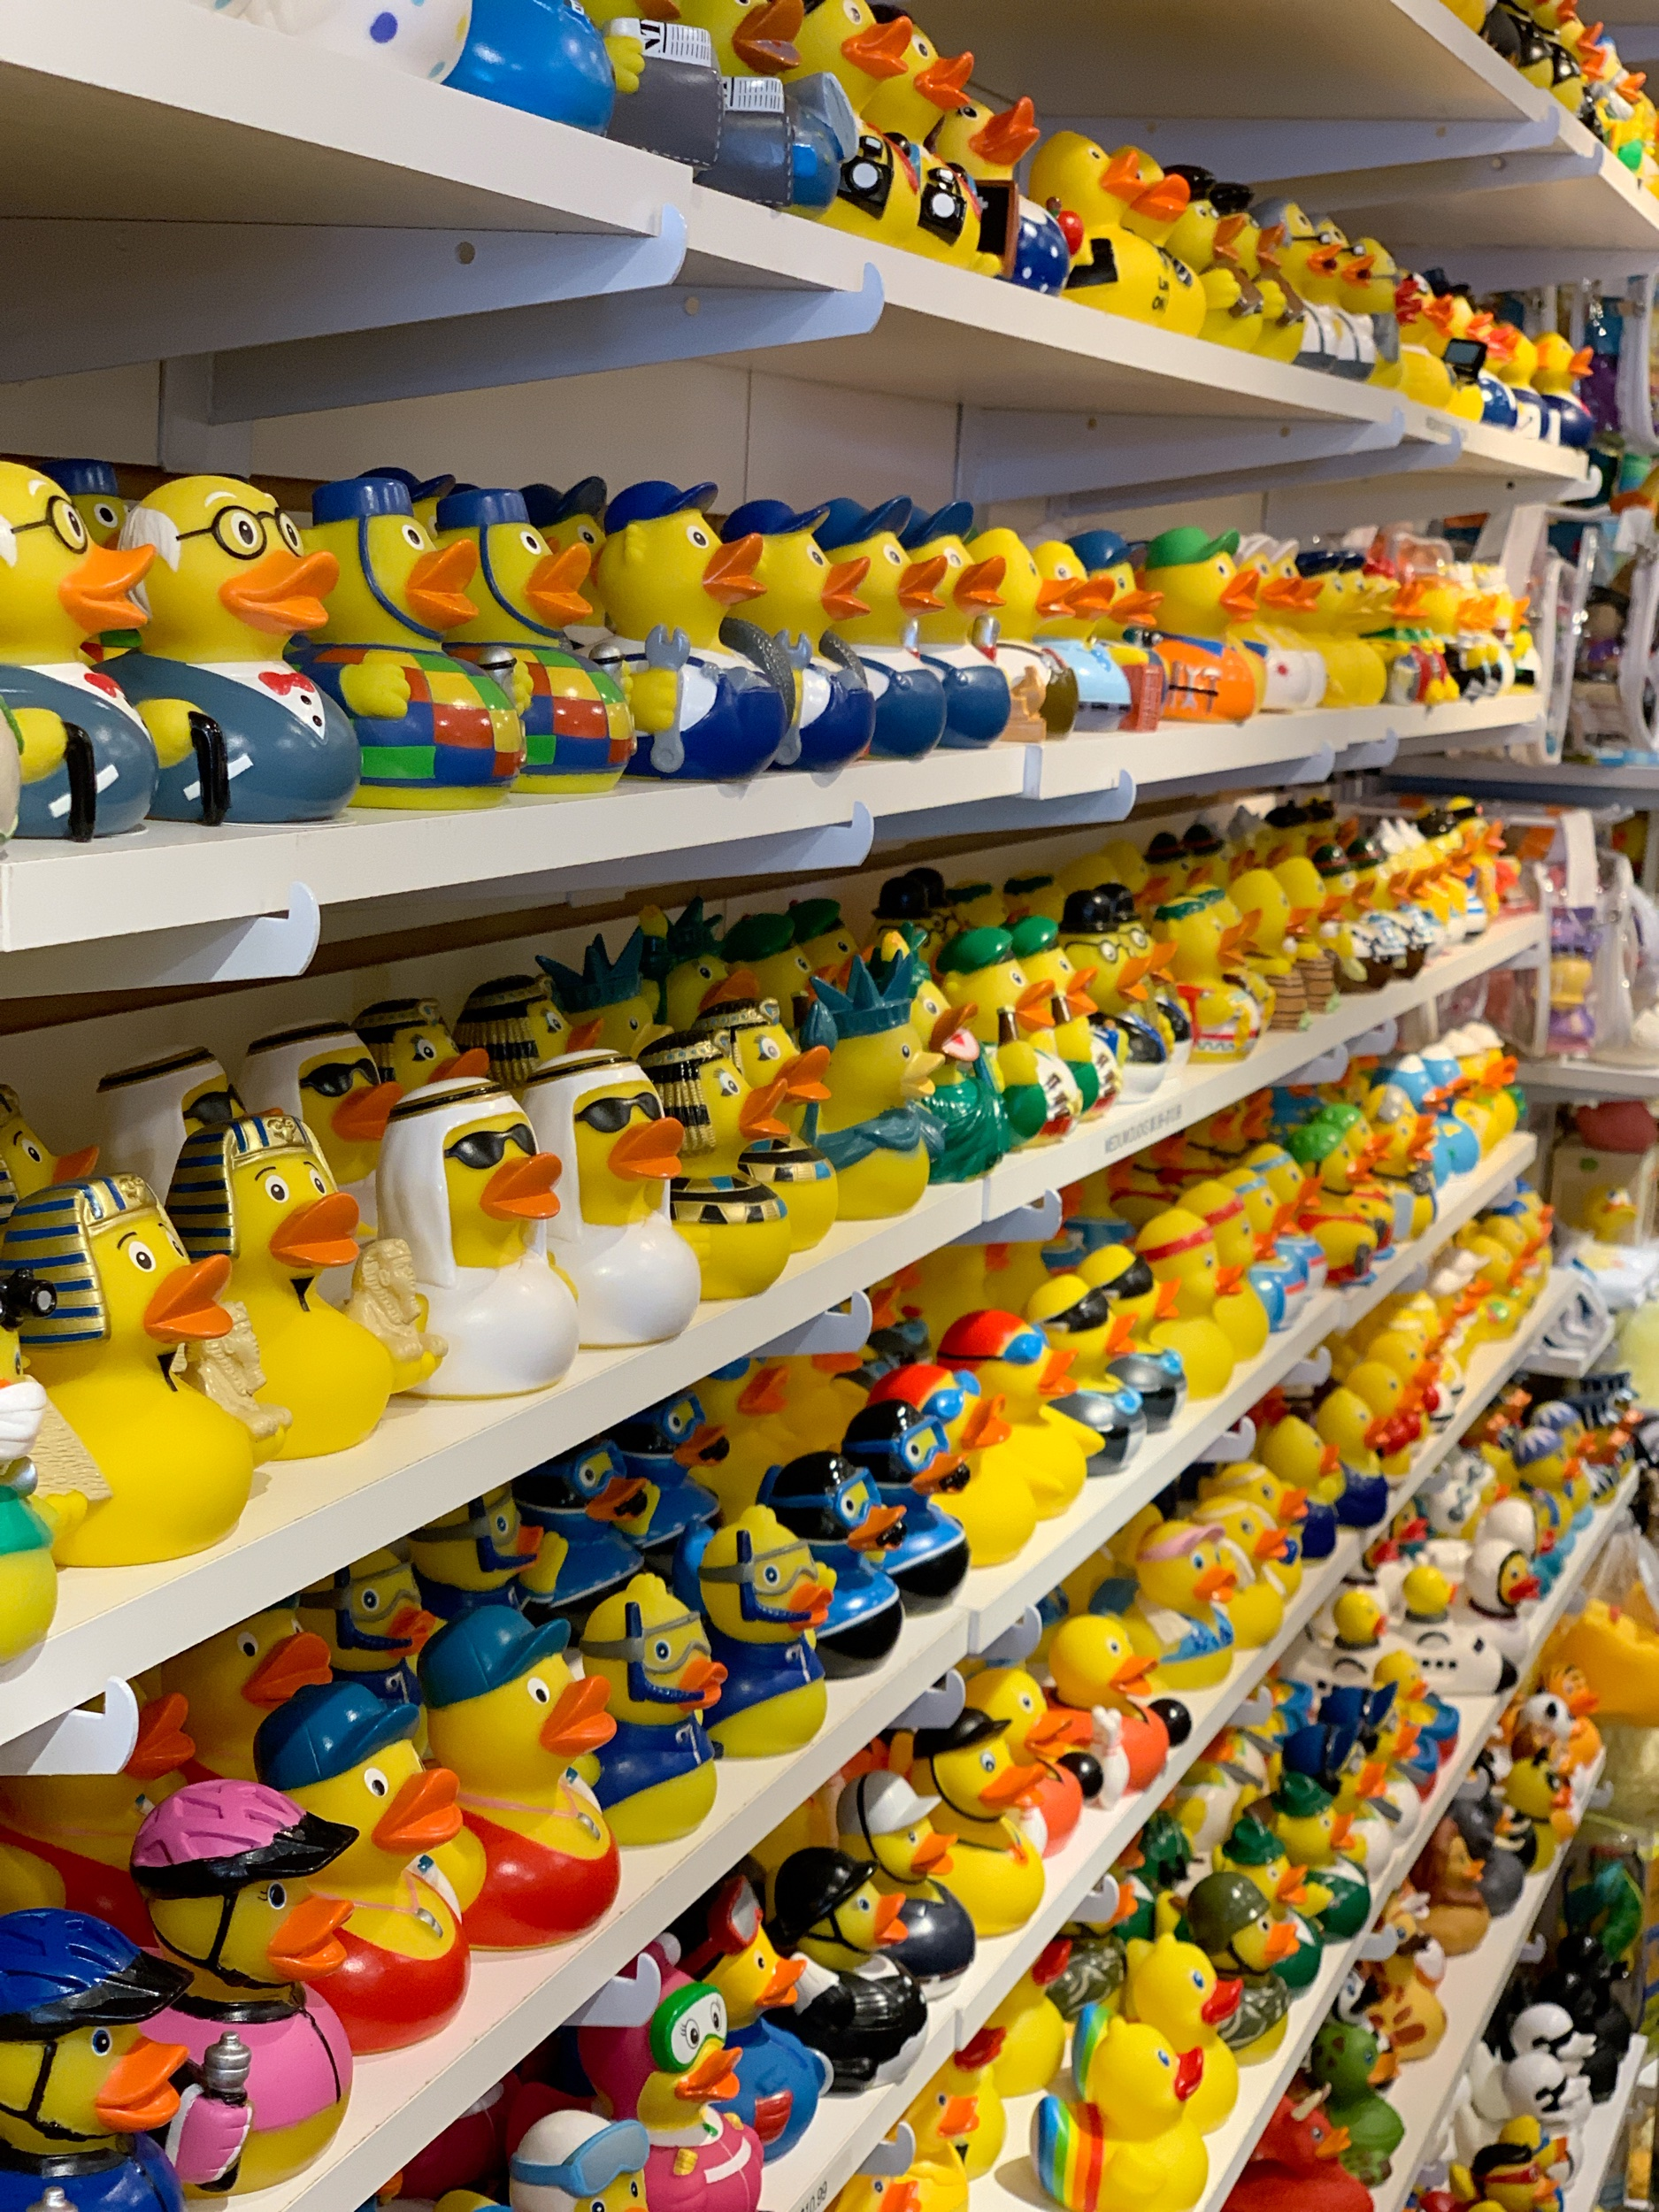 Time to get my ducks in a row -